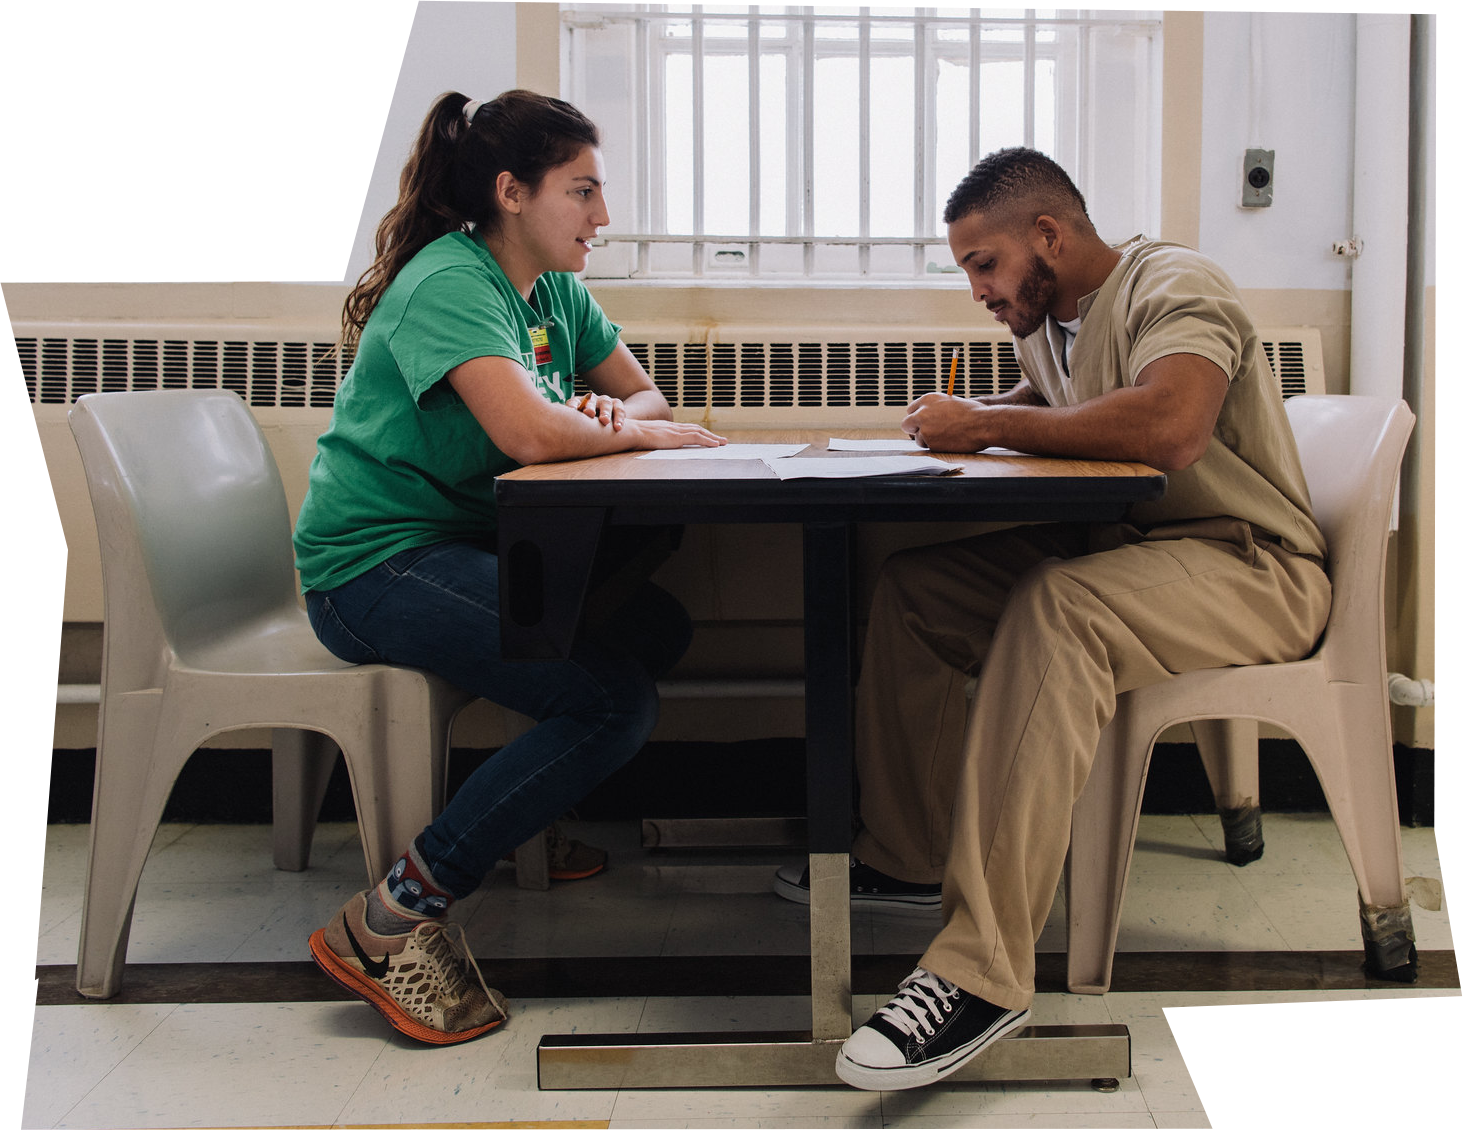 Student sitting at a table across from an inmate at a local correctional facility.